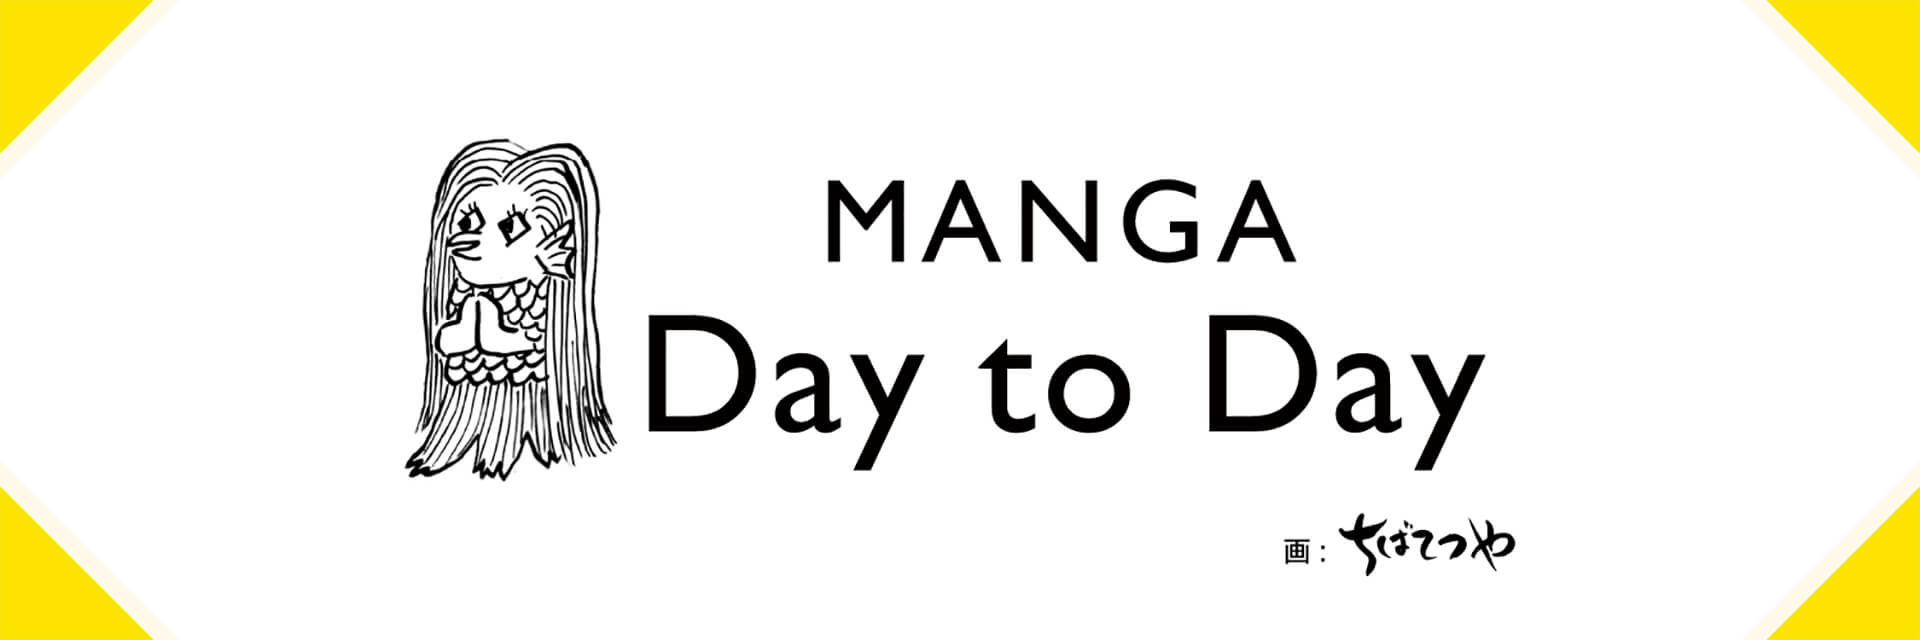 MANGA Day to Day バナー